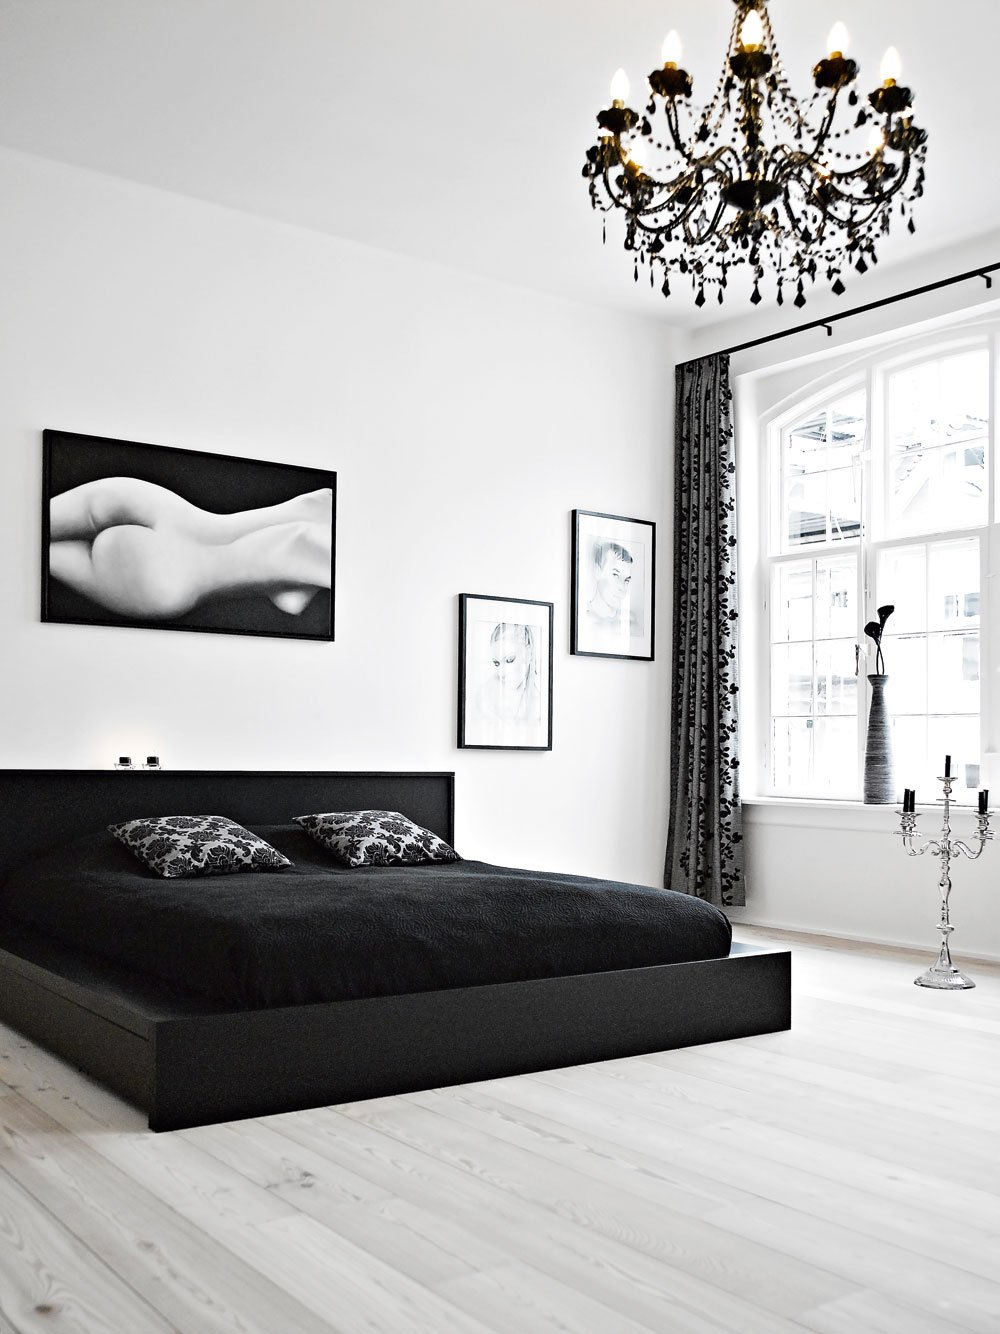 Monochrome Bedroom with Chandelier